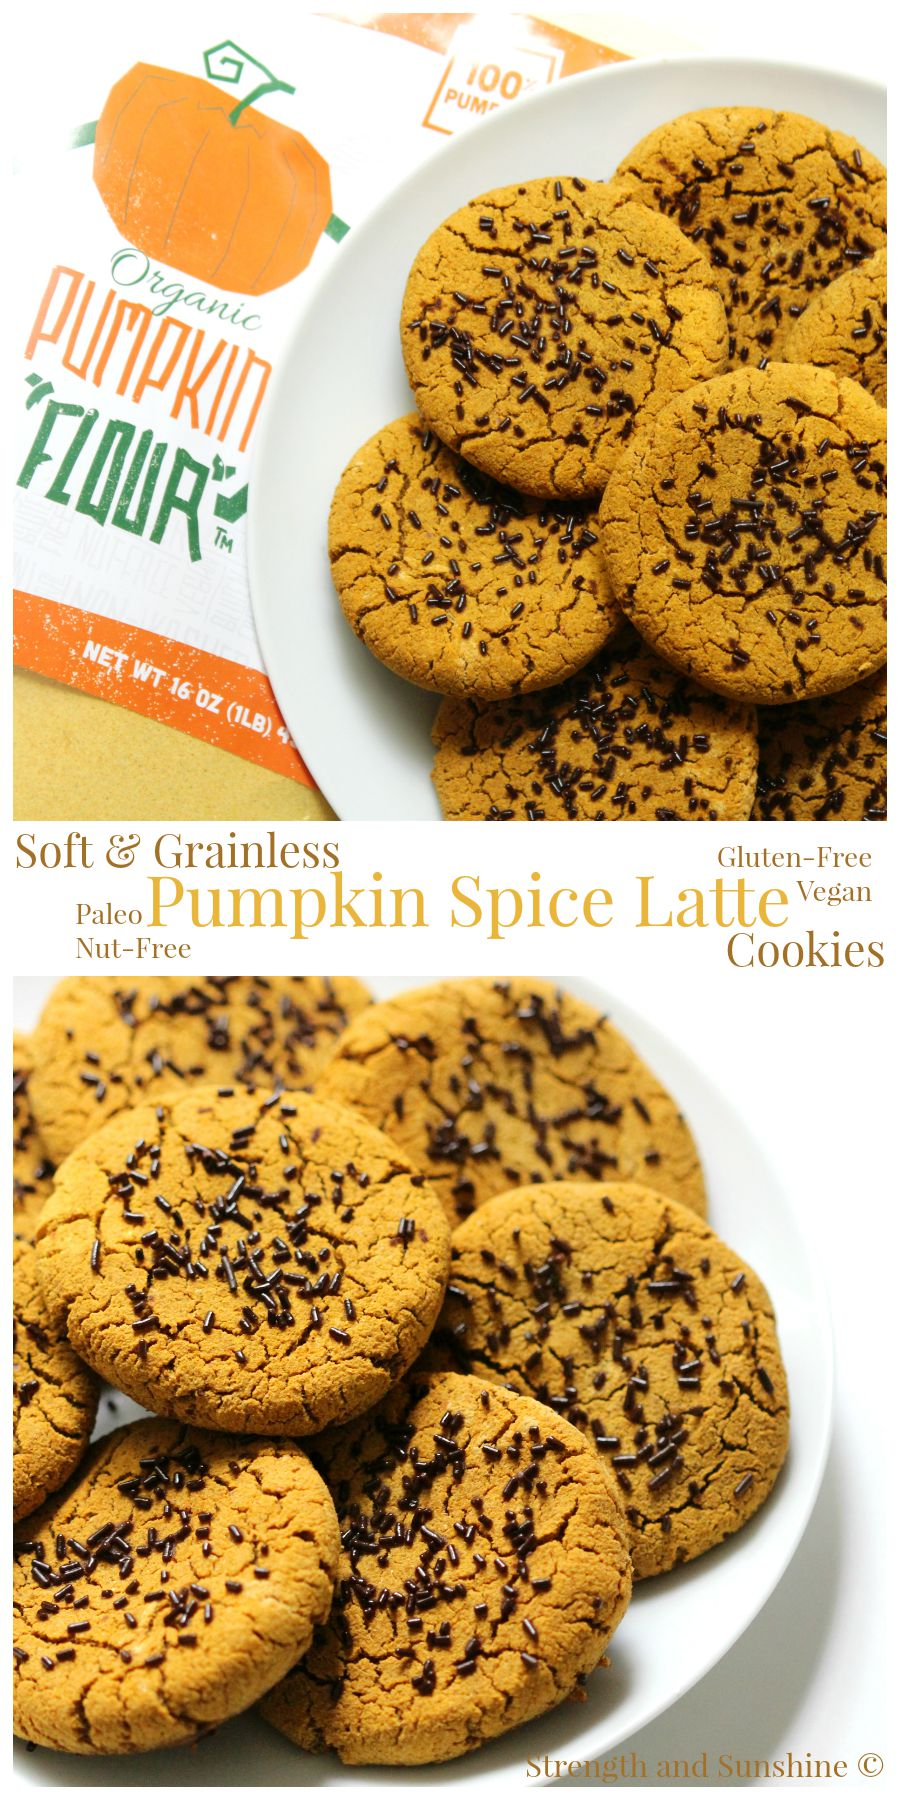 Soft & Grainless Pumpkin Spice Latte Cookies | Strength and Sunshine @RebeccaGF666 Soft and pillowy cookies, healthier (and better) than a drinkable pumpkin spice latte. These pumpkin spice latte cookies are free from the top 8 allergens, gluten-free, vegan, and paleo. You'll be sure to get a dose of real pumpkin here! A perfect Fall dessert recipe.